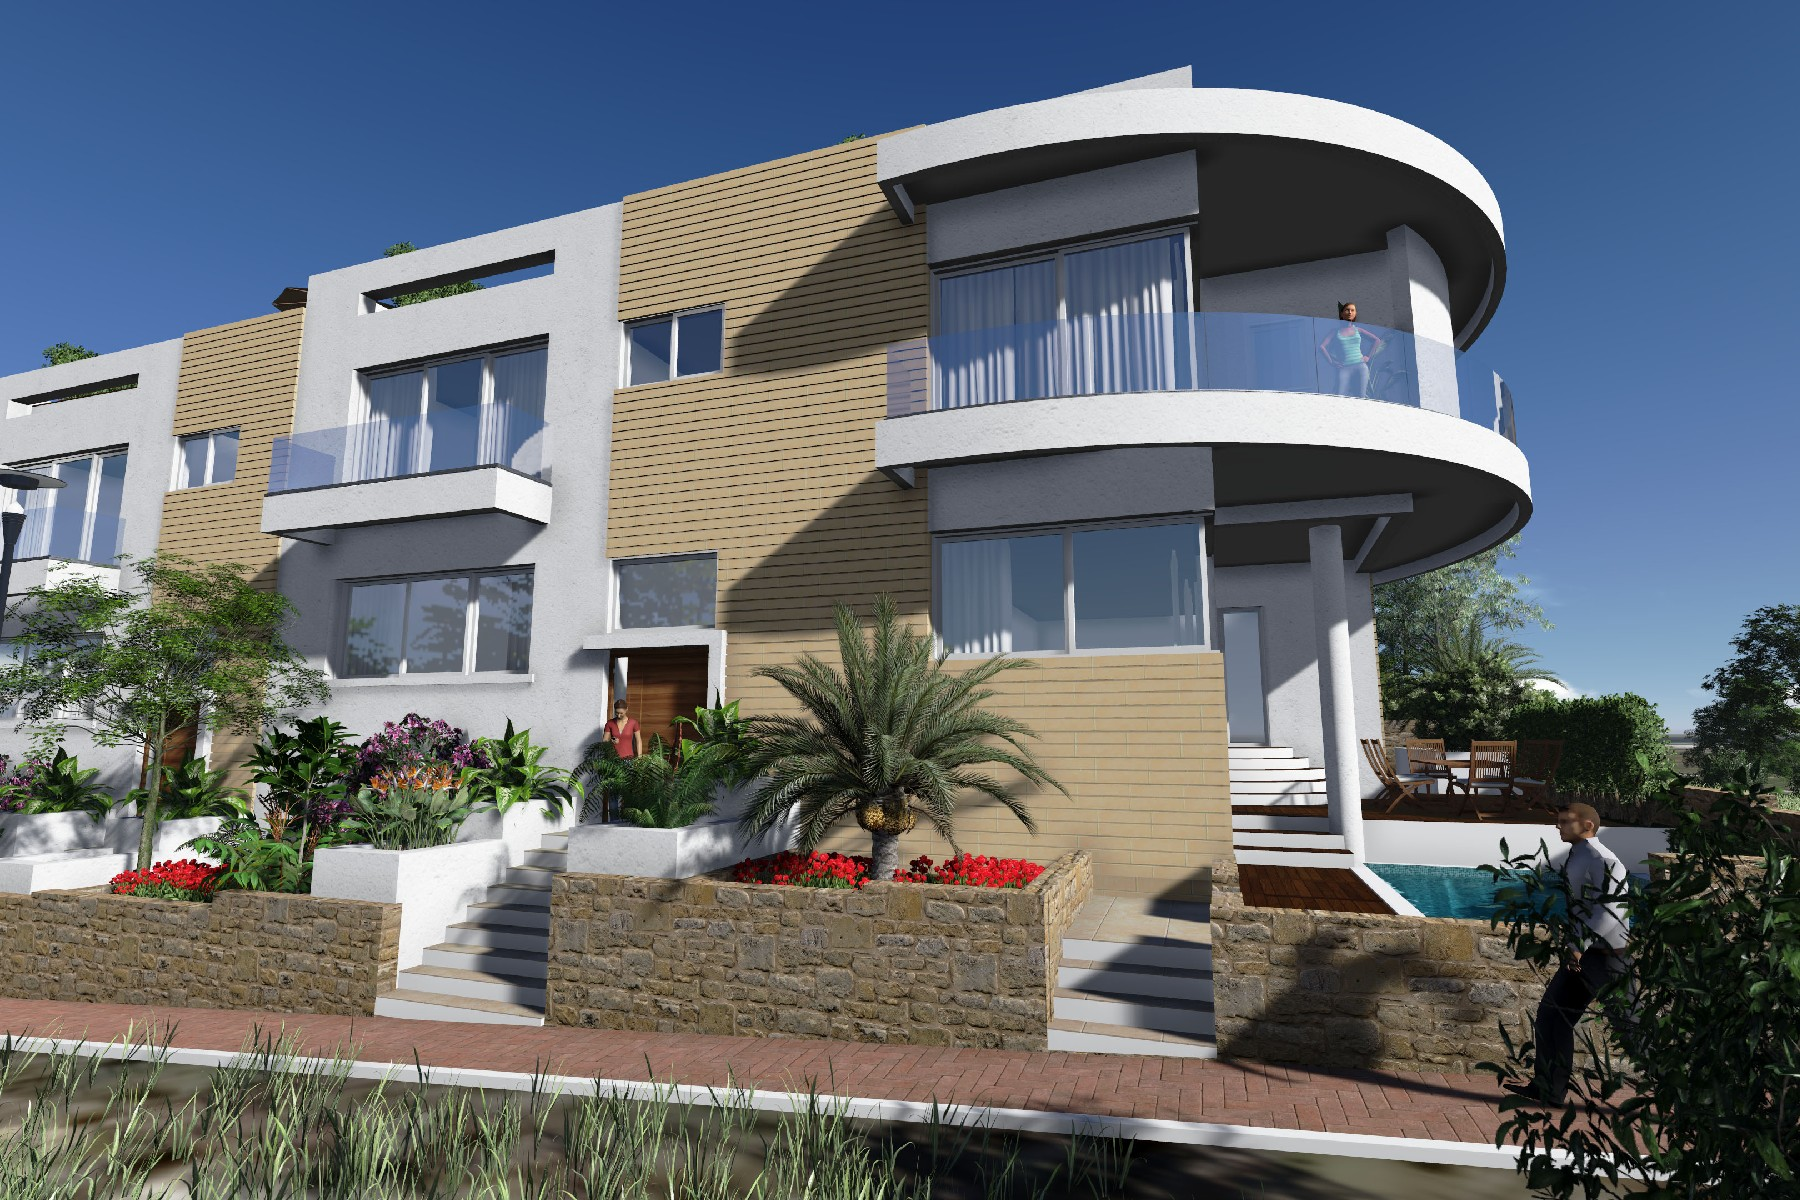 Other Residential for Sale at Luxury Terraced Houses Bahar Ic Caghaq, Sliema Valletta Surroundings NXR 1000 Malta